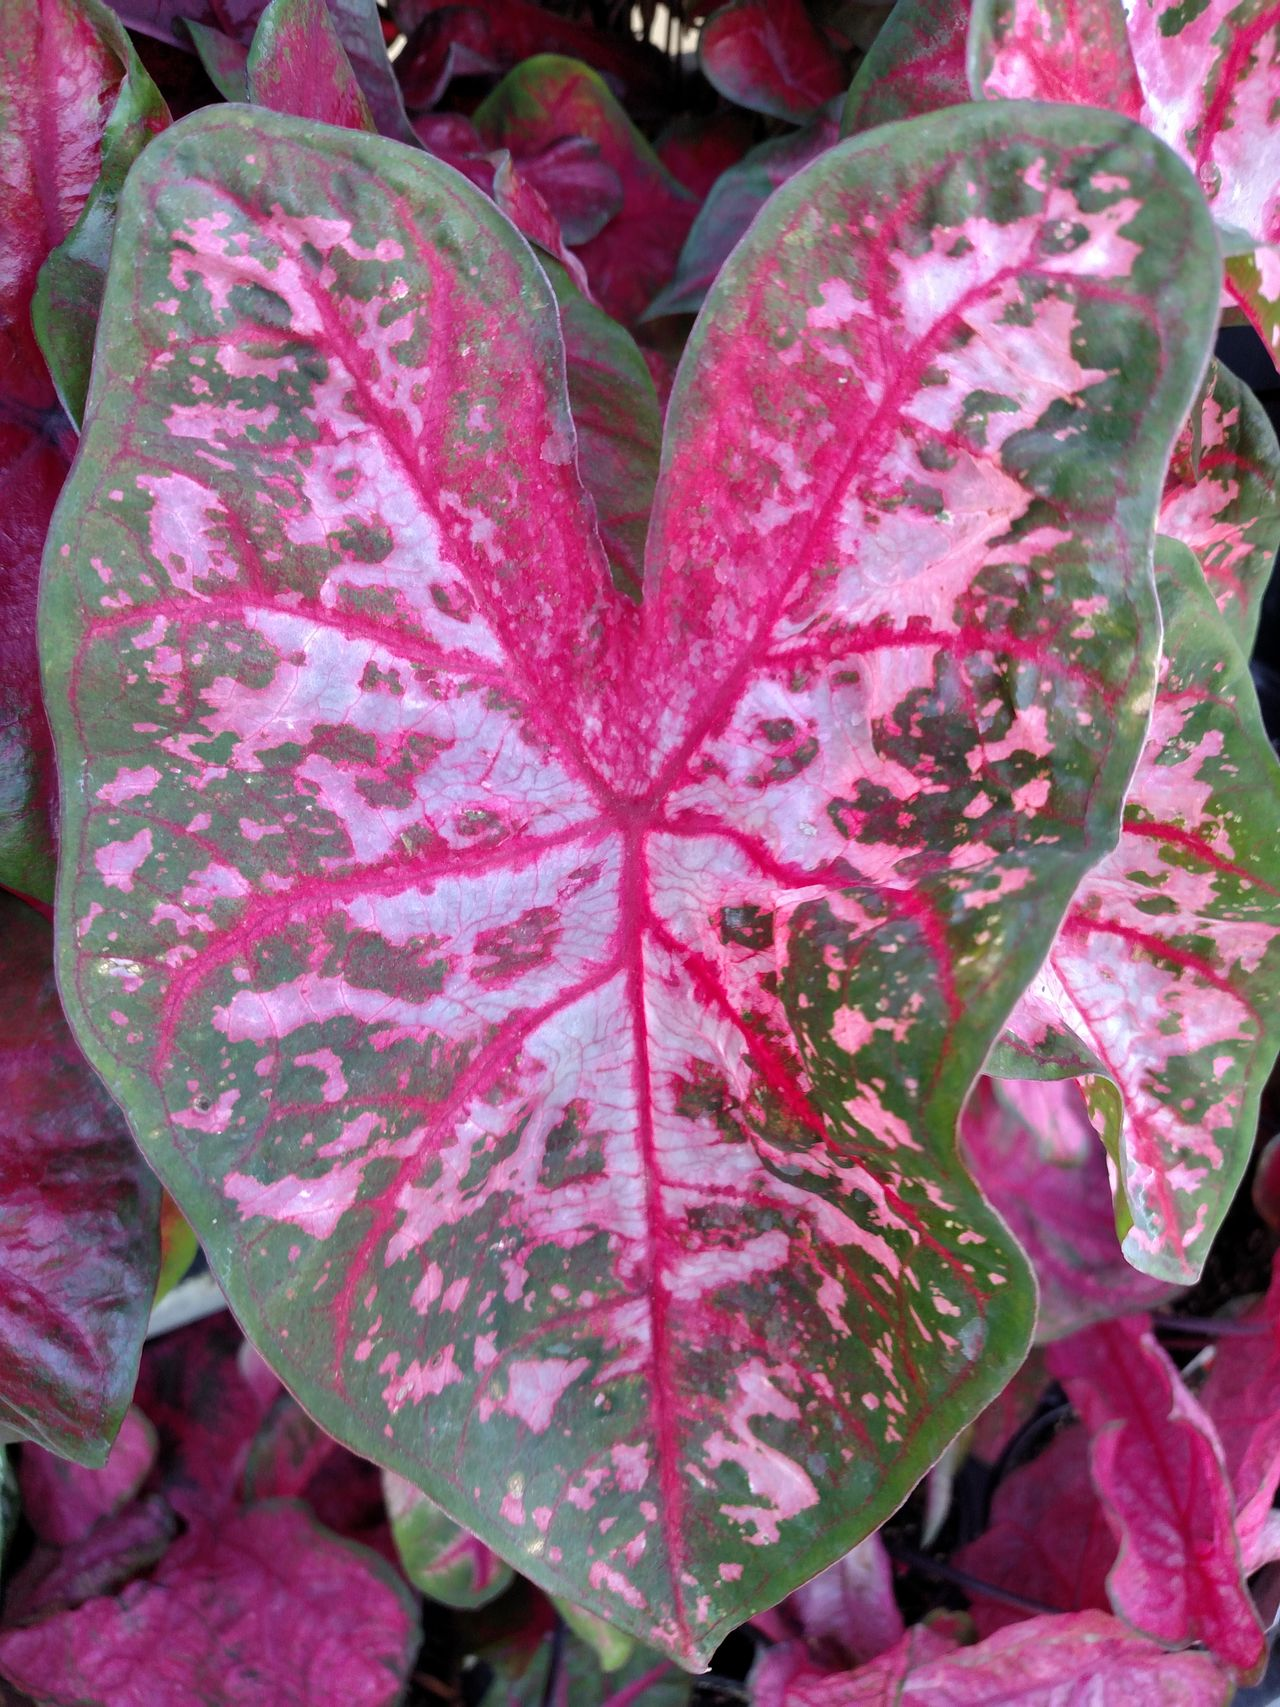 The Purist (no Edit, No Filter) Pink Leaves Heart Shape Heart Shapes In Nature Landscape_captures Landscape Garden Flowers Ladyphotographerofthemonth Leaf Vein Leafporn Leaf Veins Art In Nature Pink And Green